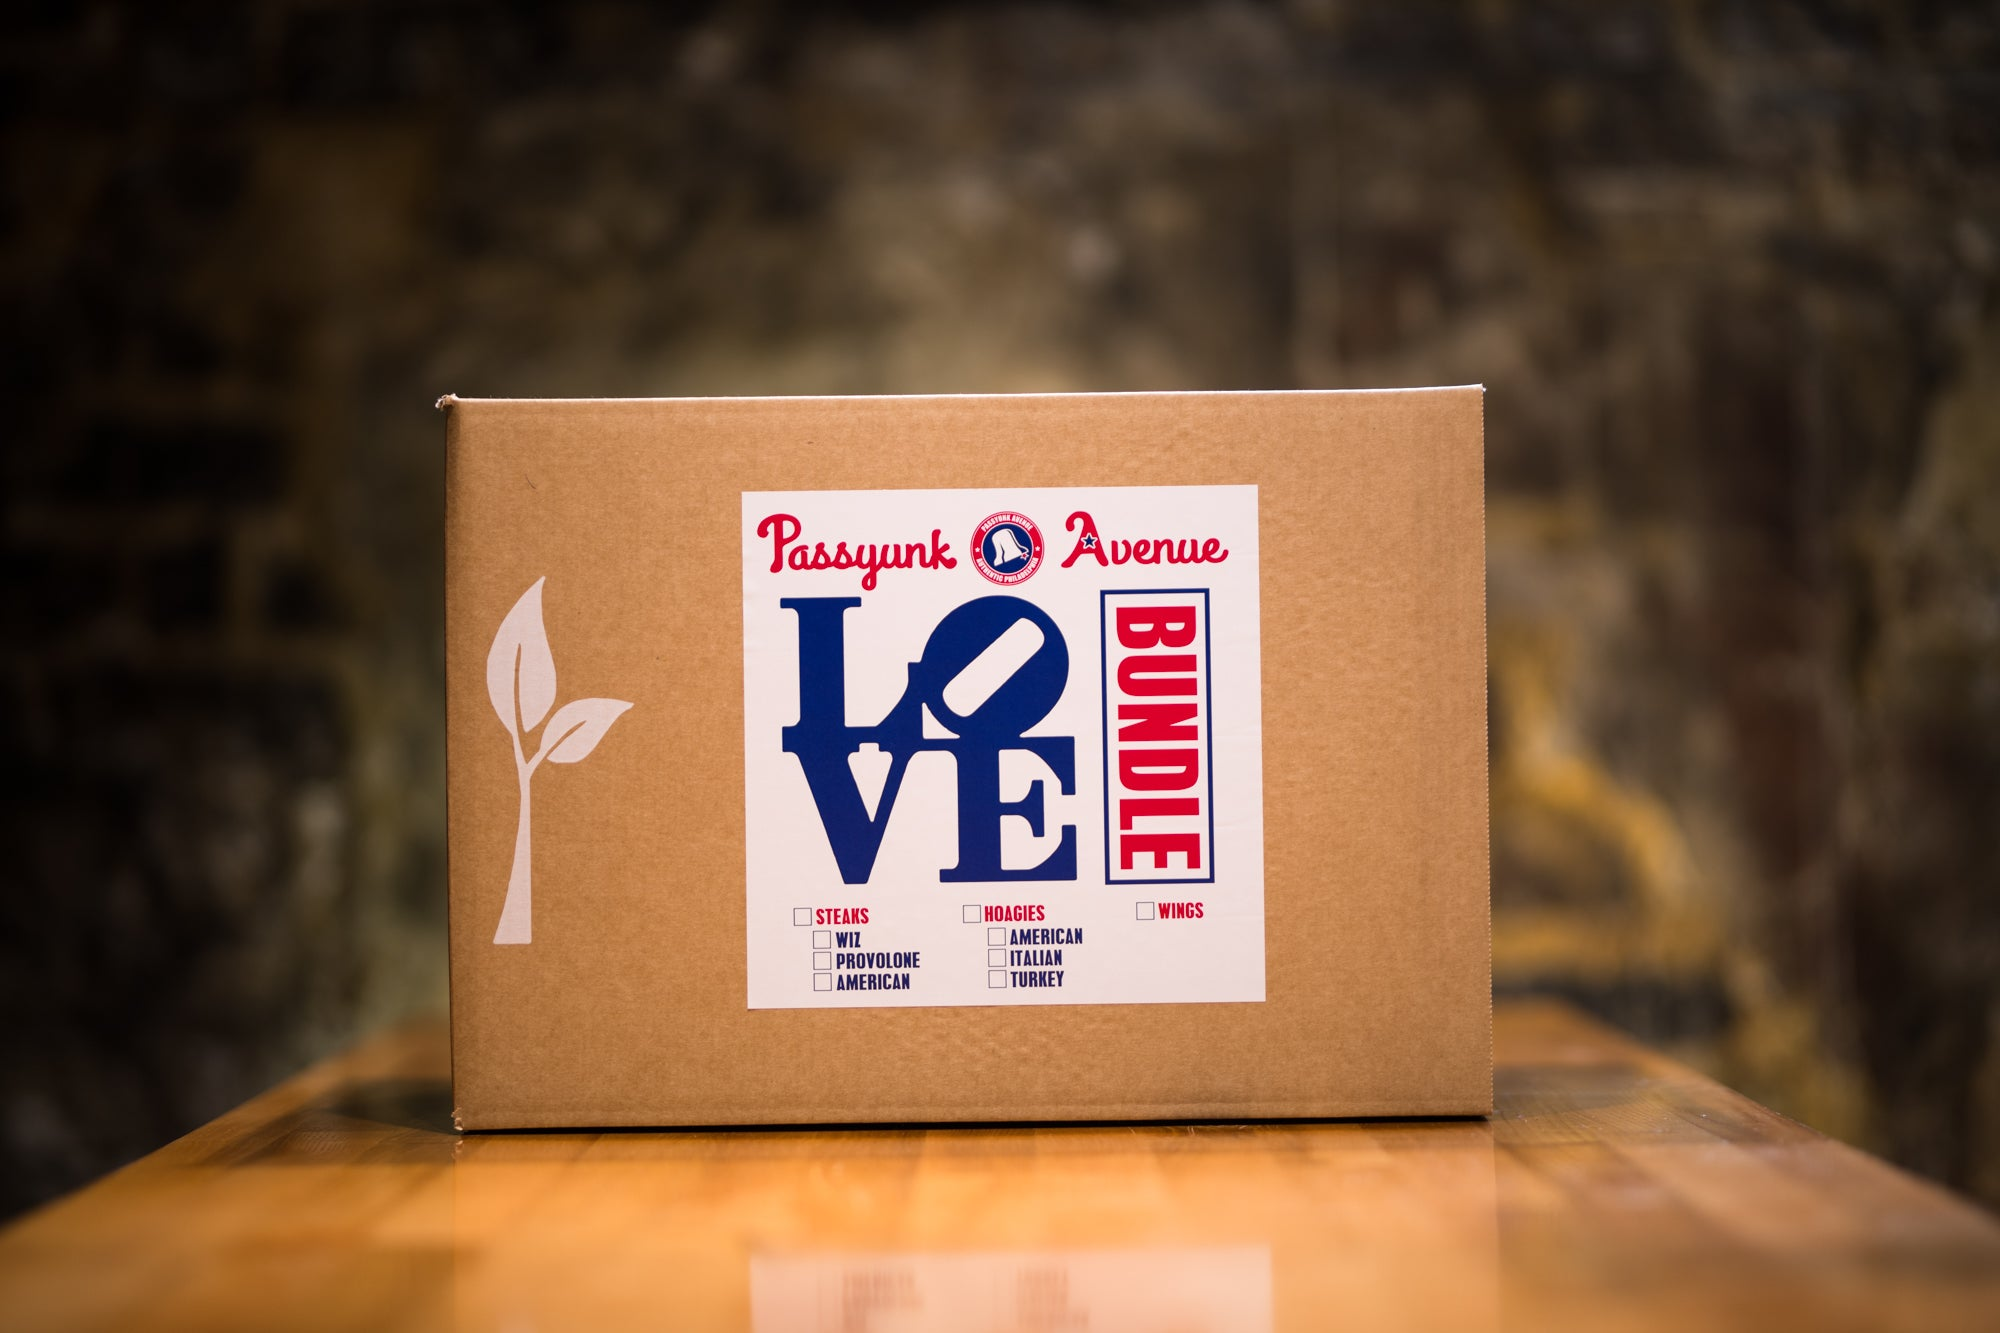 Hoagie & Wings LOVEbundle